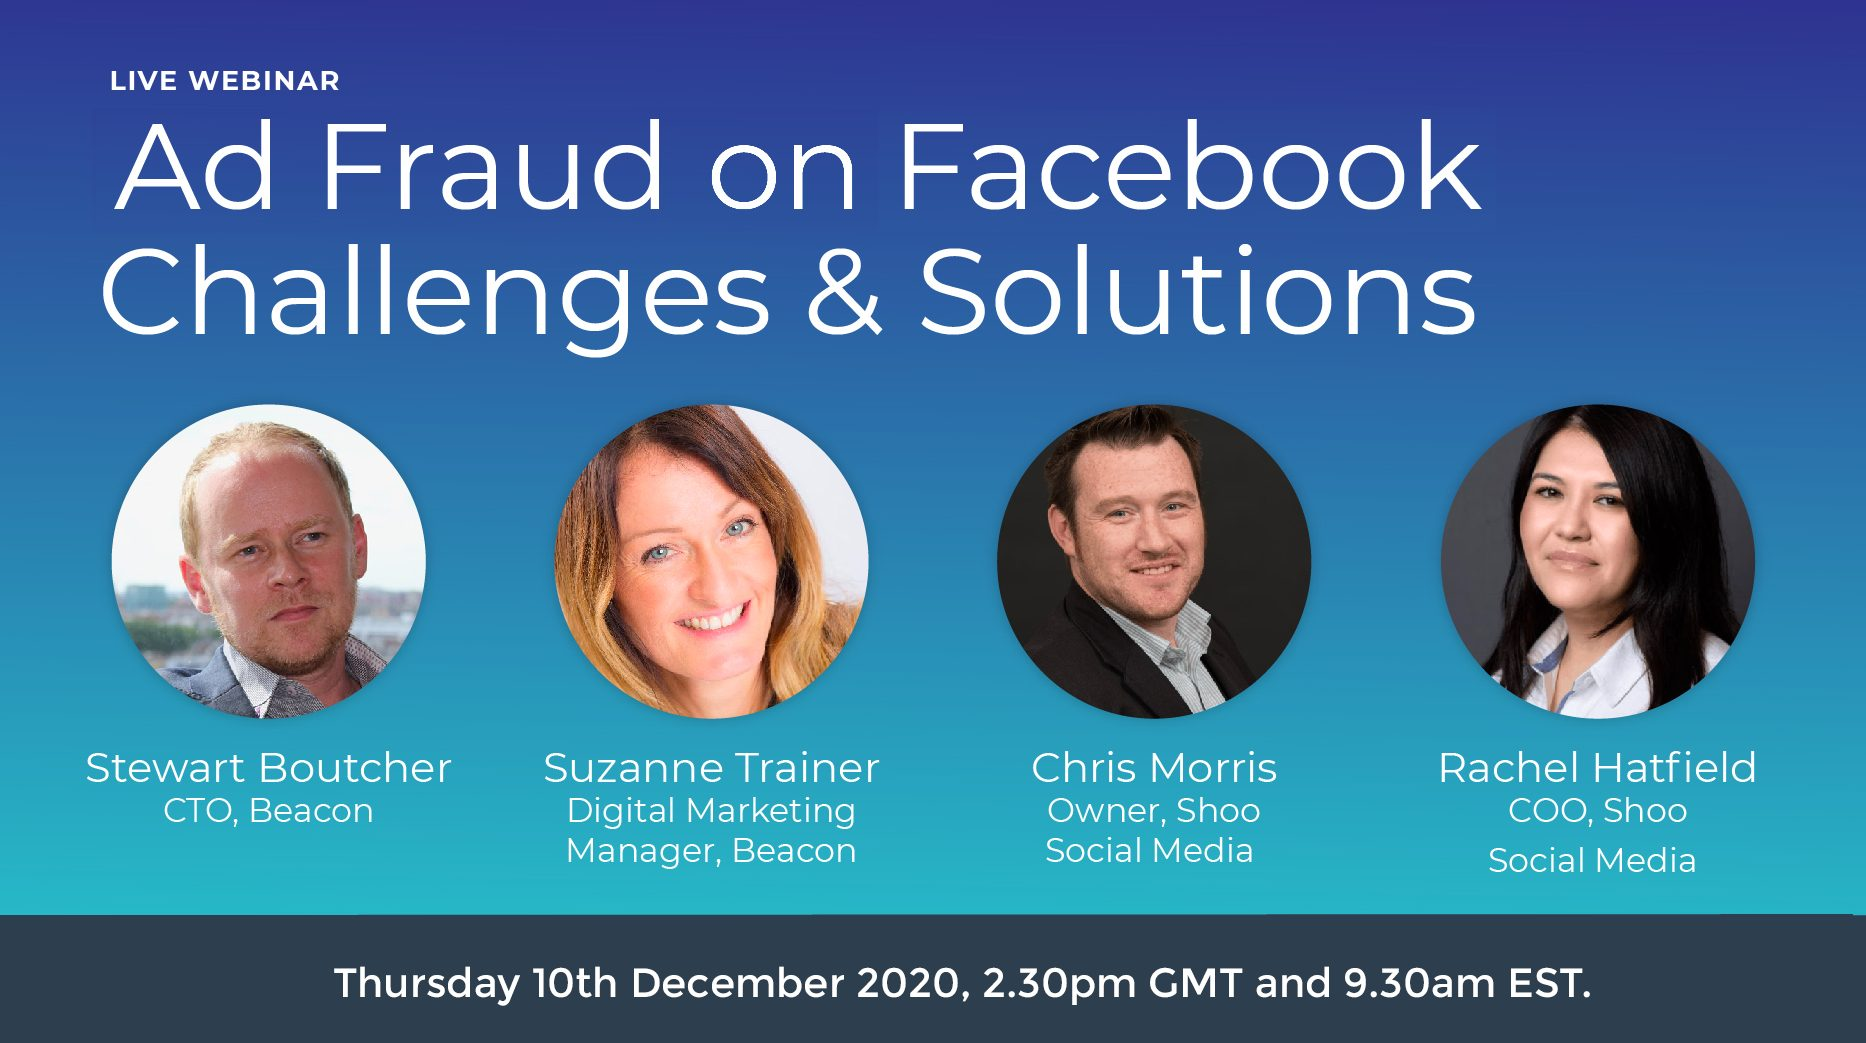 Webinar: Ad Fraud on Facebook